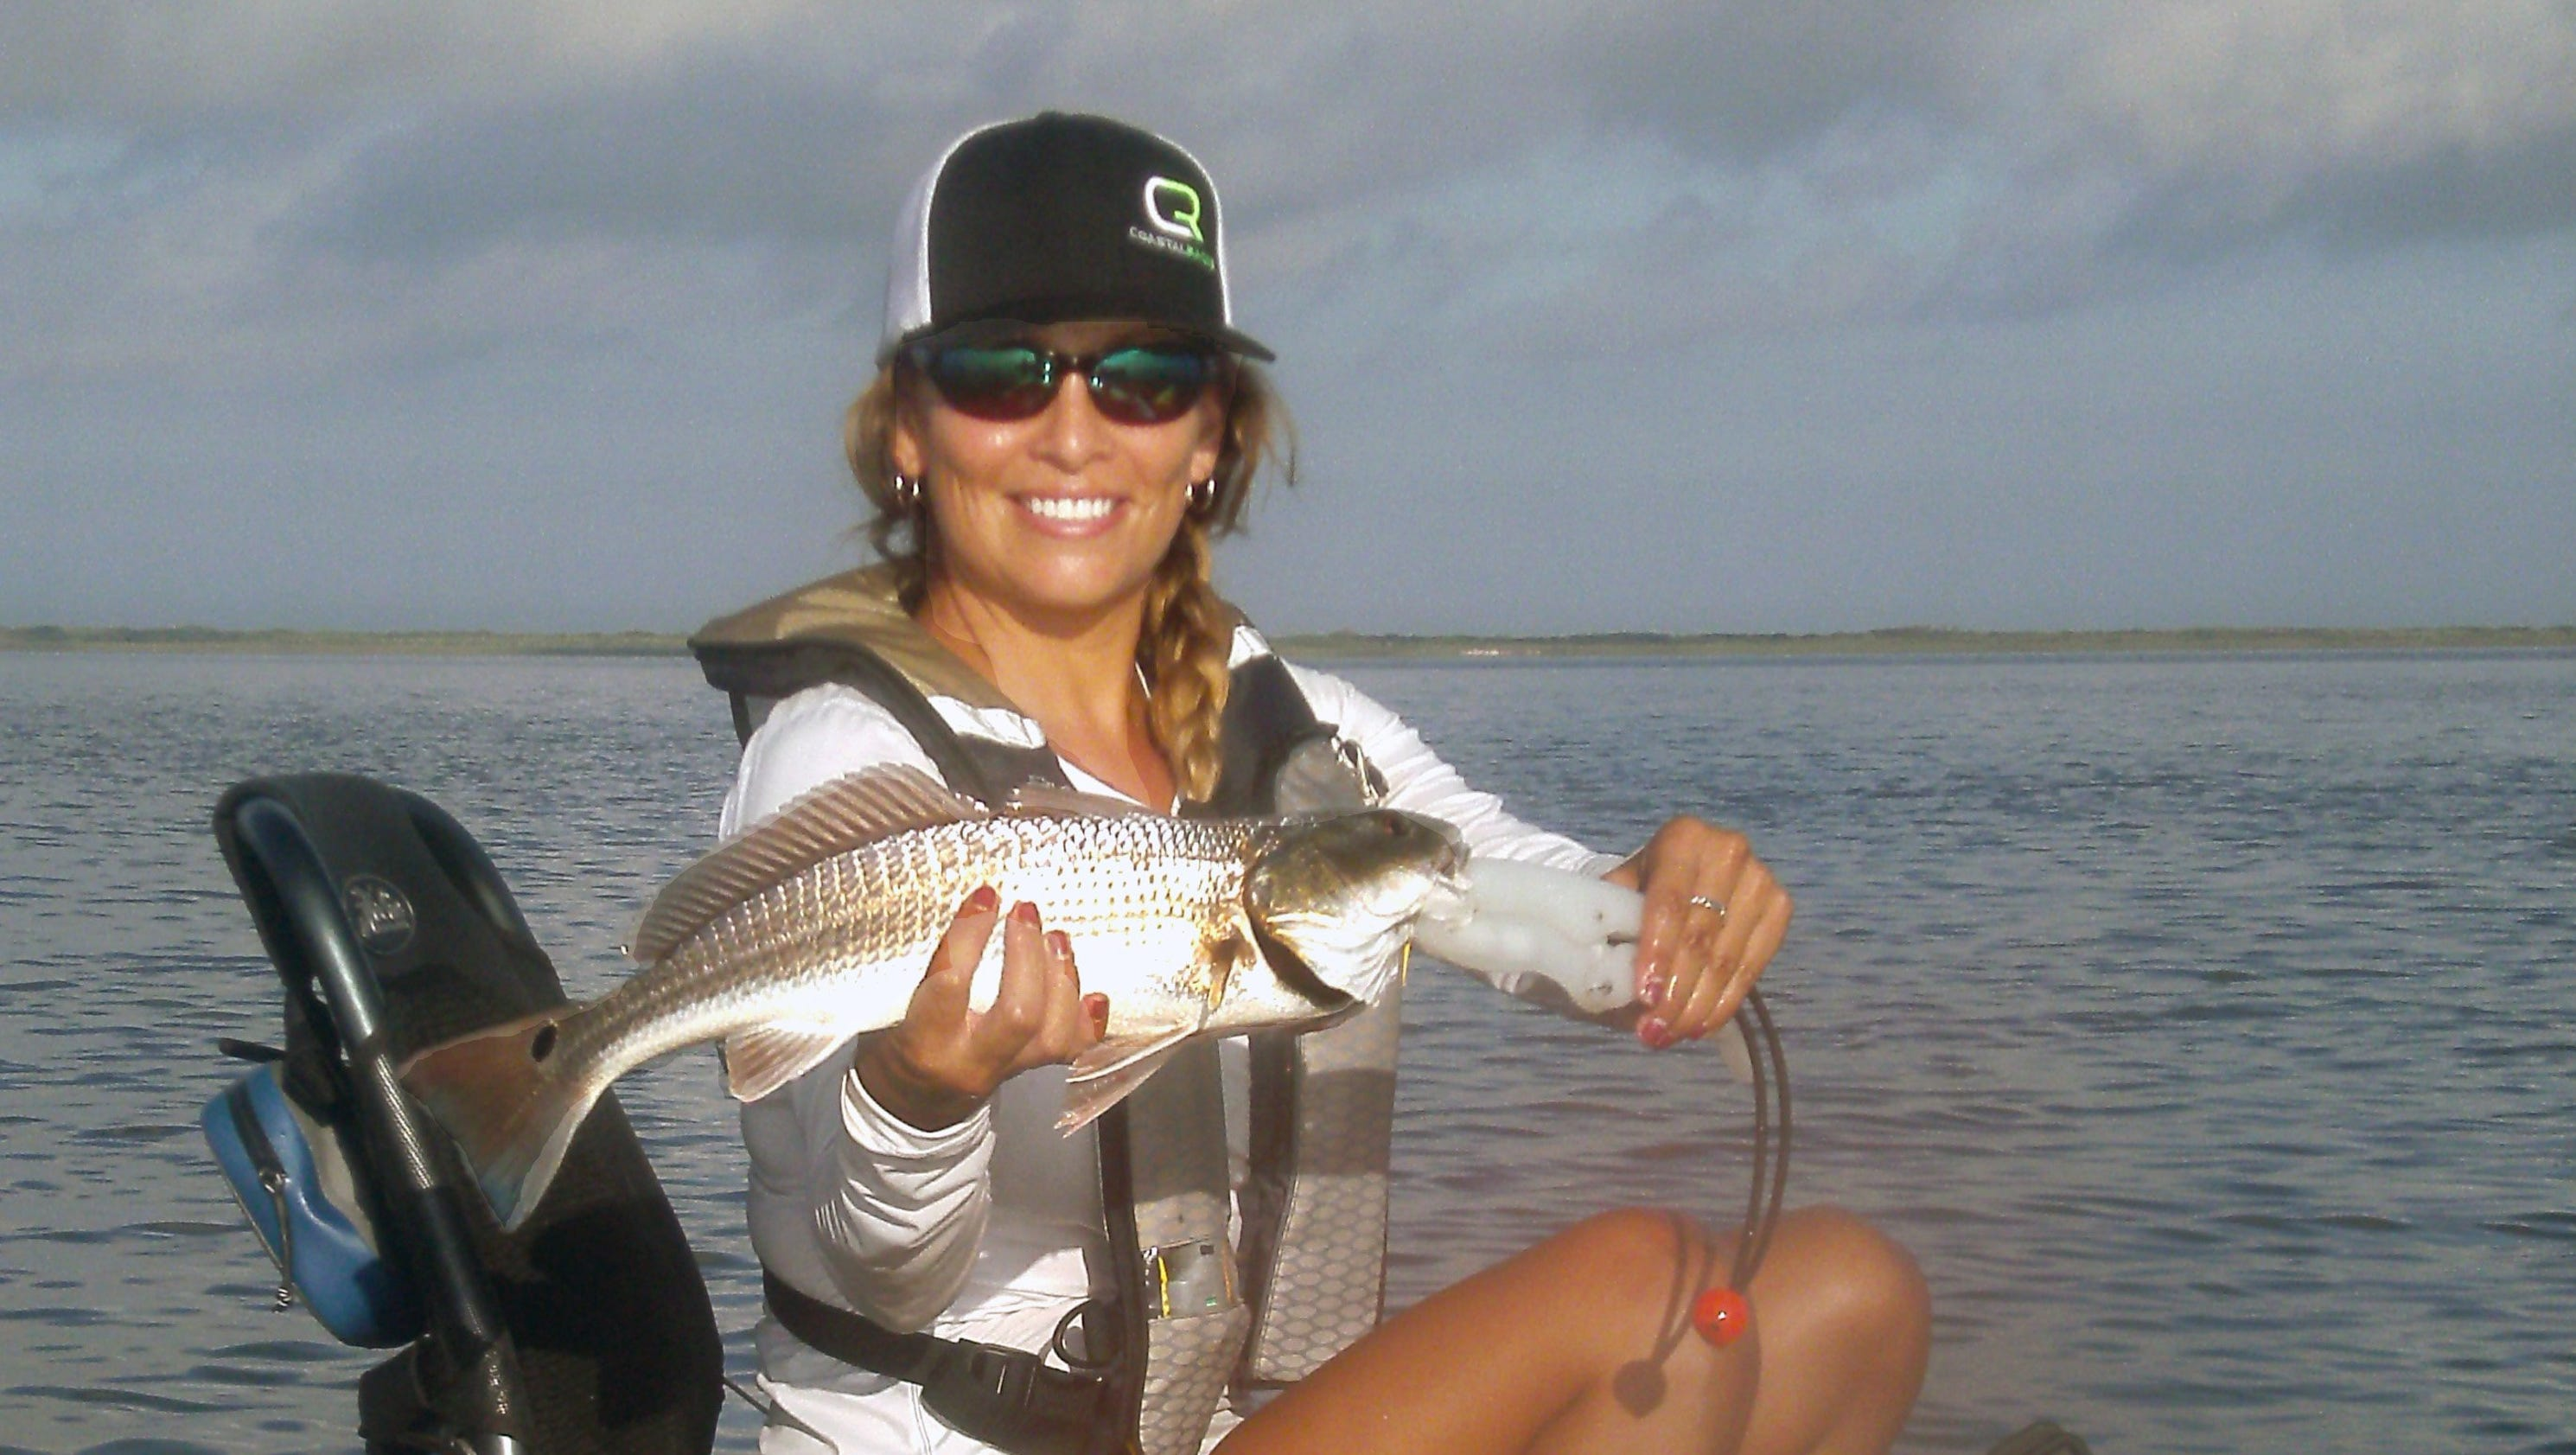 Some of the best fishing spots in corpus christi for Corpus christi fishing spots